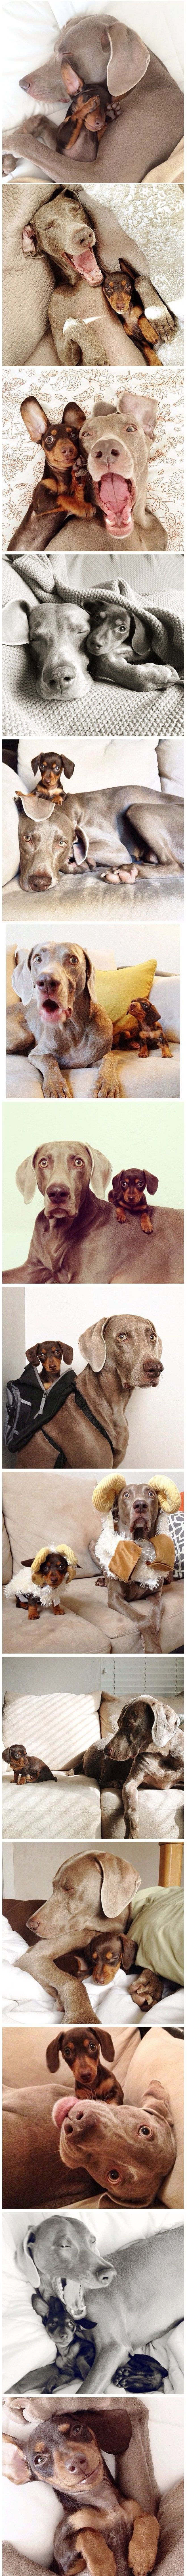 The cutest dog photo shoot I've ever seen